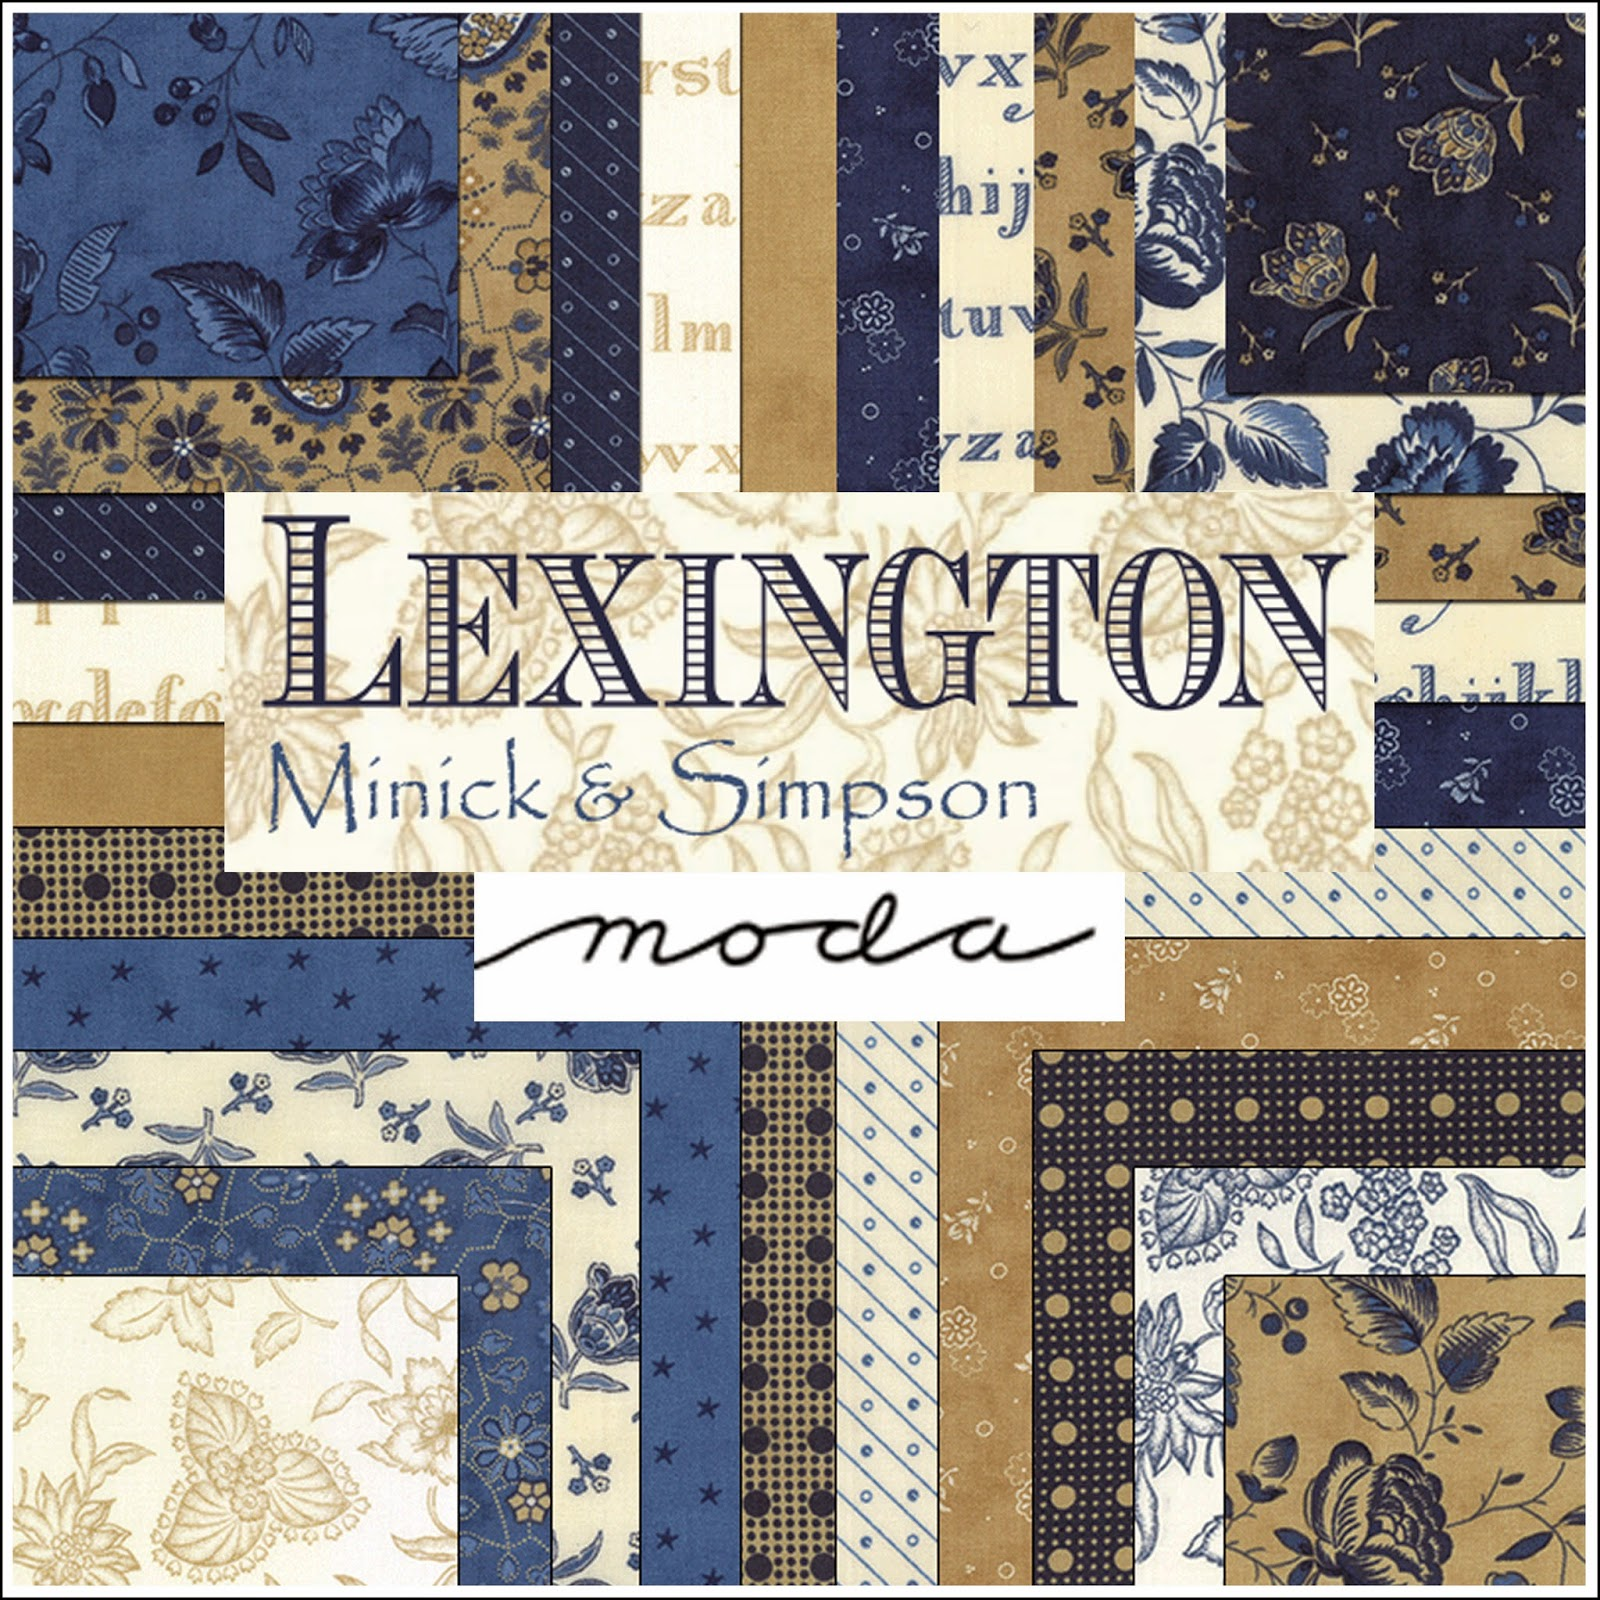 Moda LEXINGTON Quilt Fabric by Minick & Simpson for Moda Fabrics